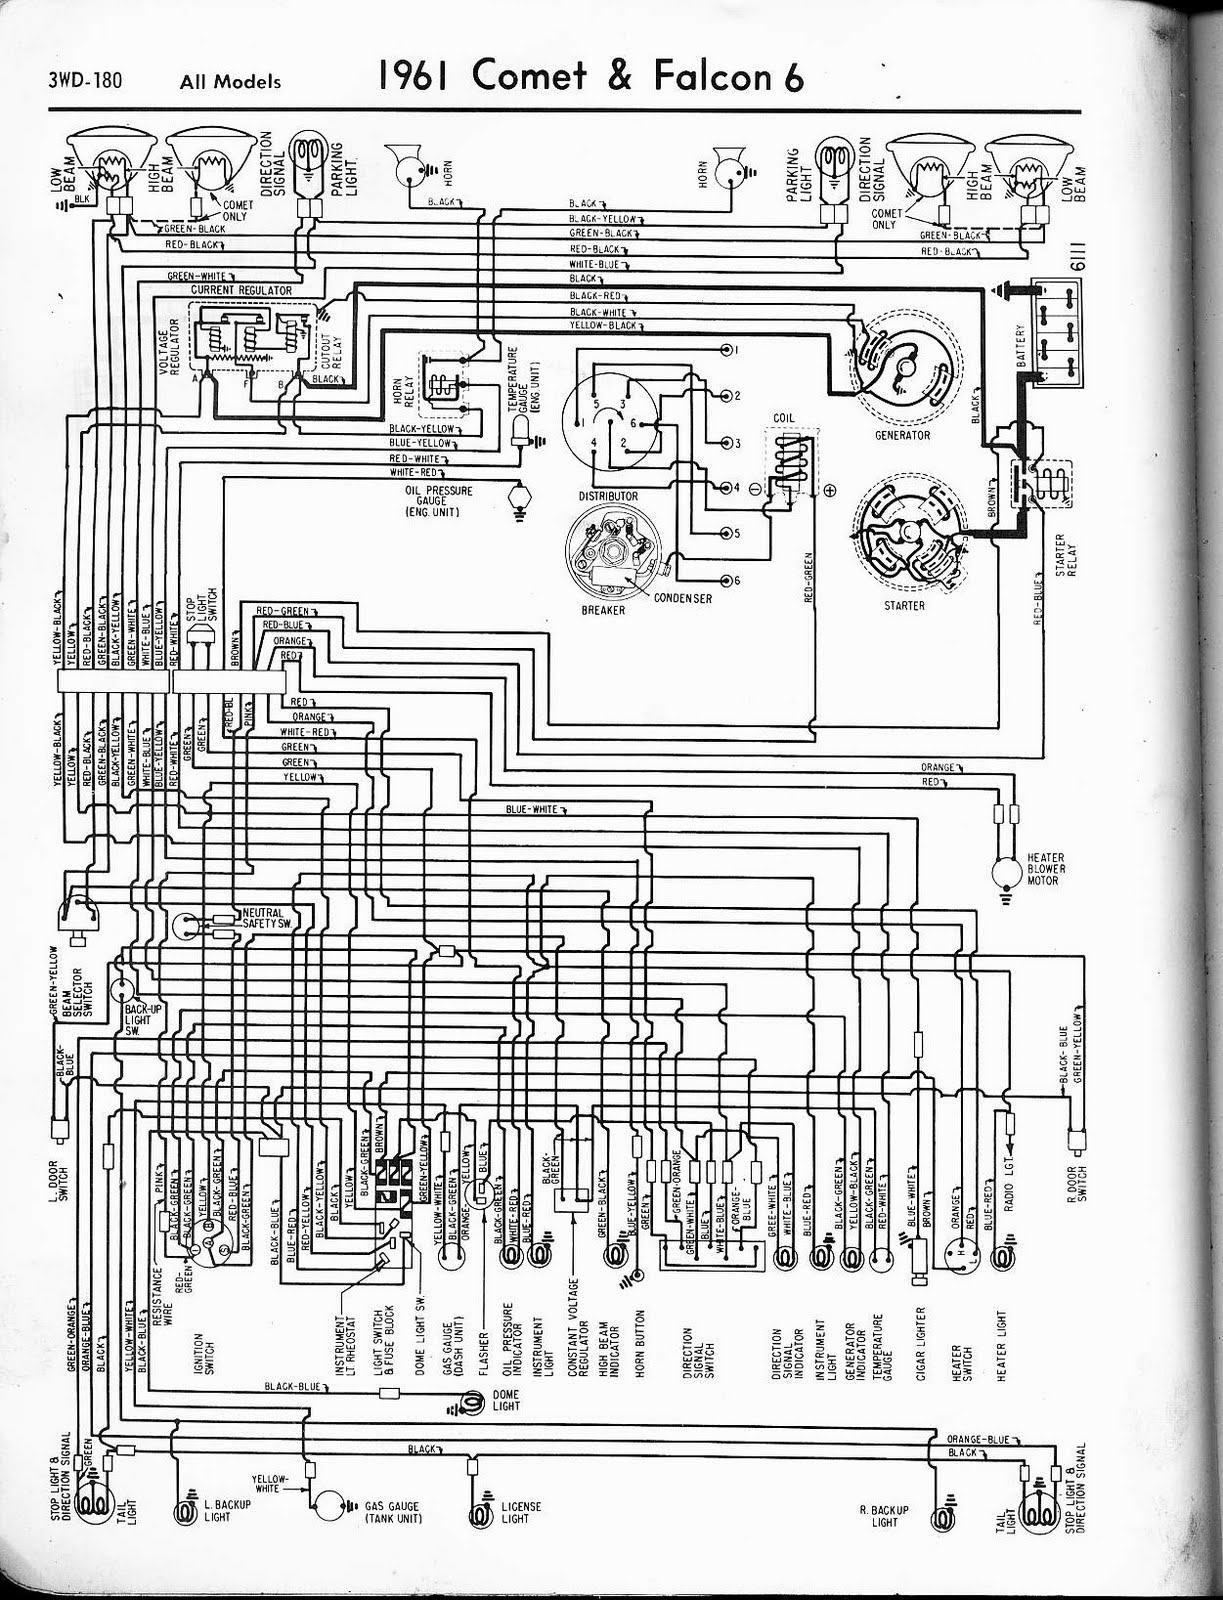 1966 Fairlane Wiring Diagram Library 77 Dodge Motorhome Gas Gauge Free Auto 1961 Ford Falcon Comet